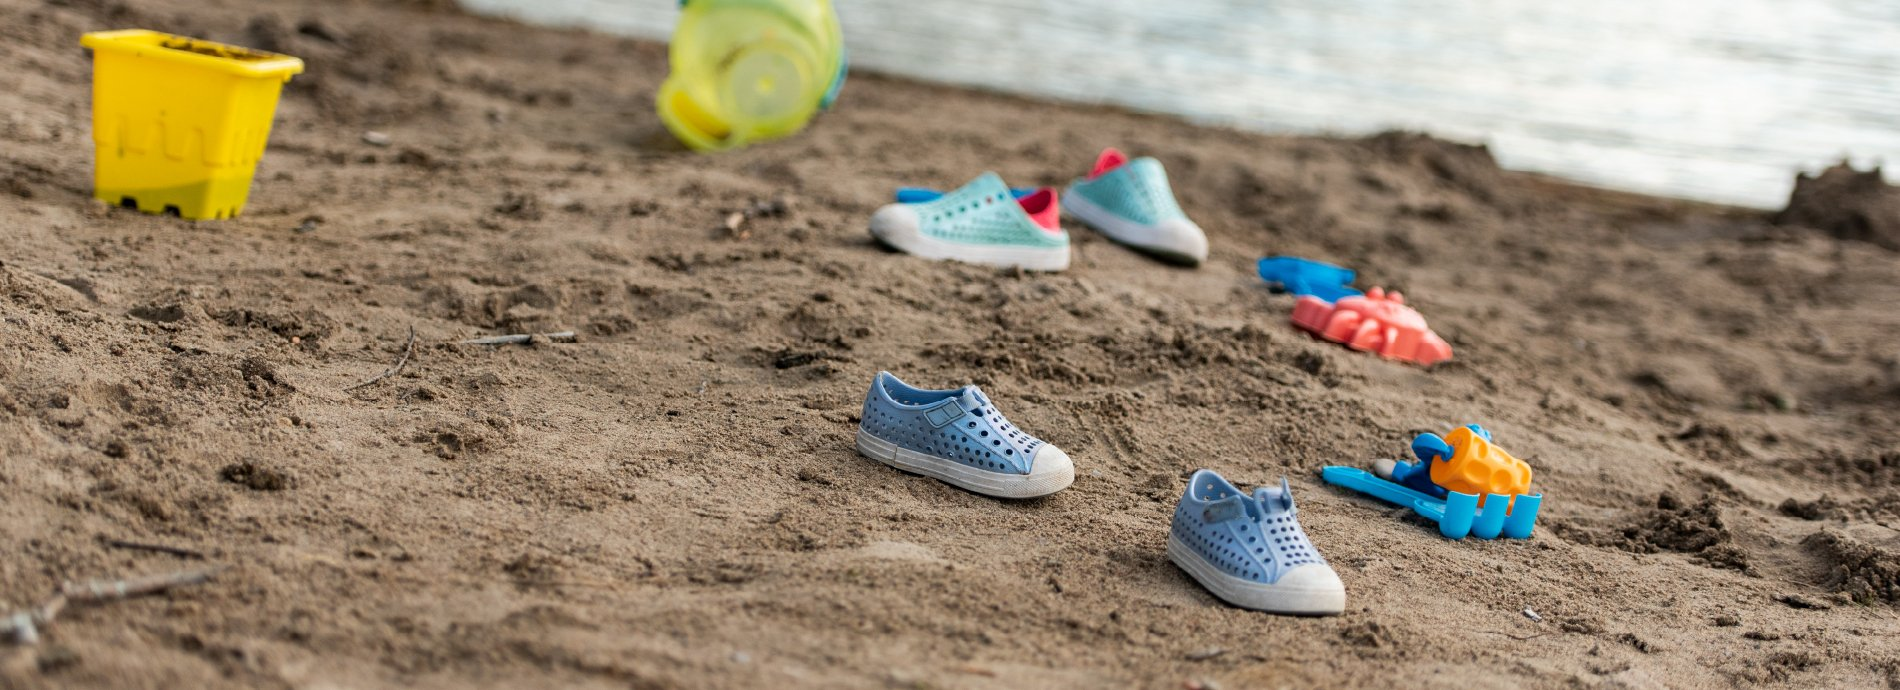 toys and shoes on sandy beach